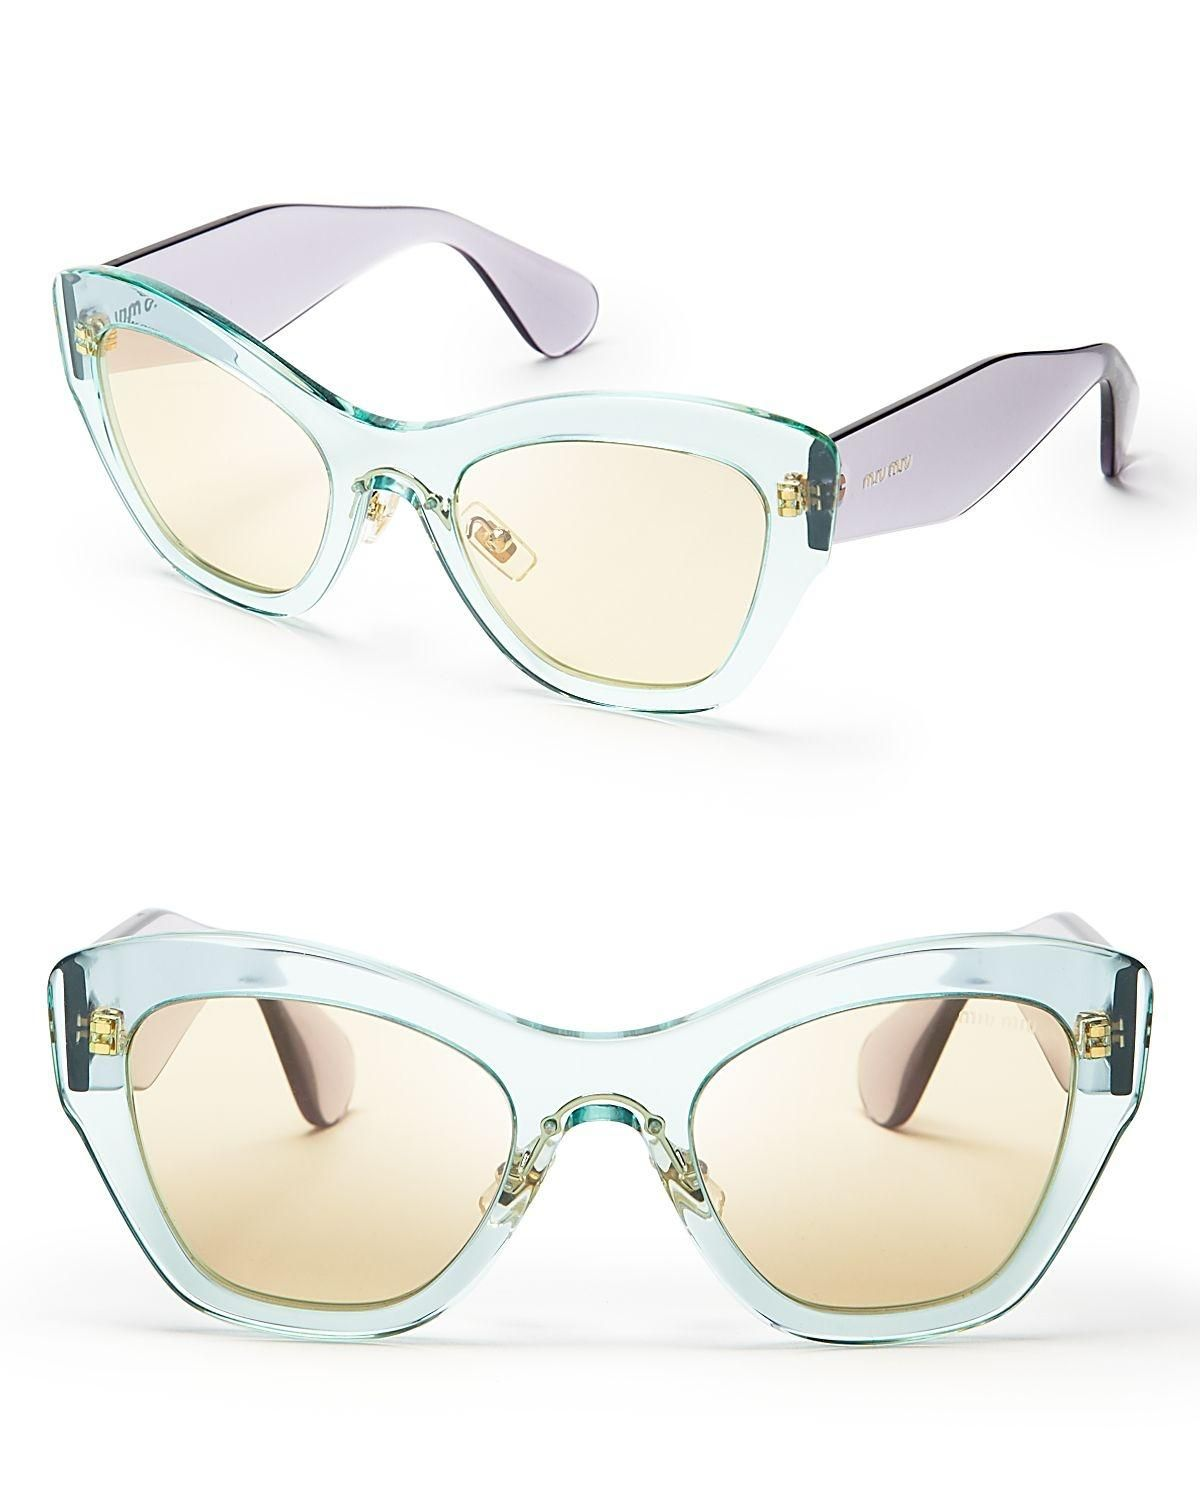 0cb3bf0f9a Free shipping and guaranteed authenticity on Transparent Light Green  Sunglasses at Tradesy. Beautiful Light green and purple transparent sungl.